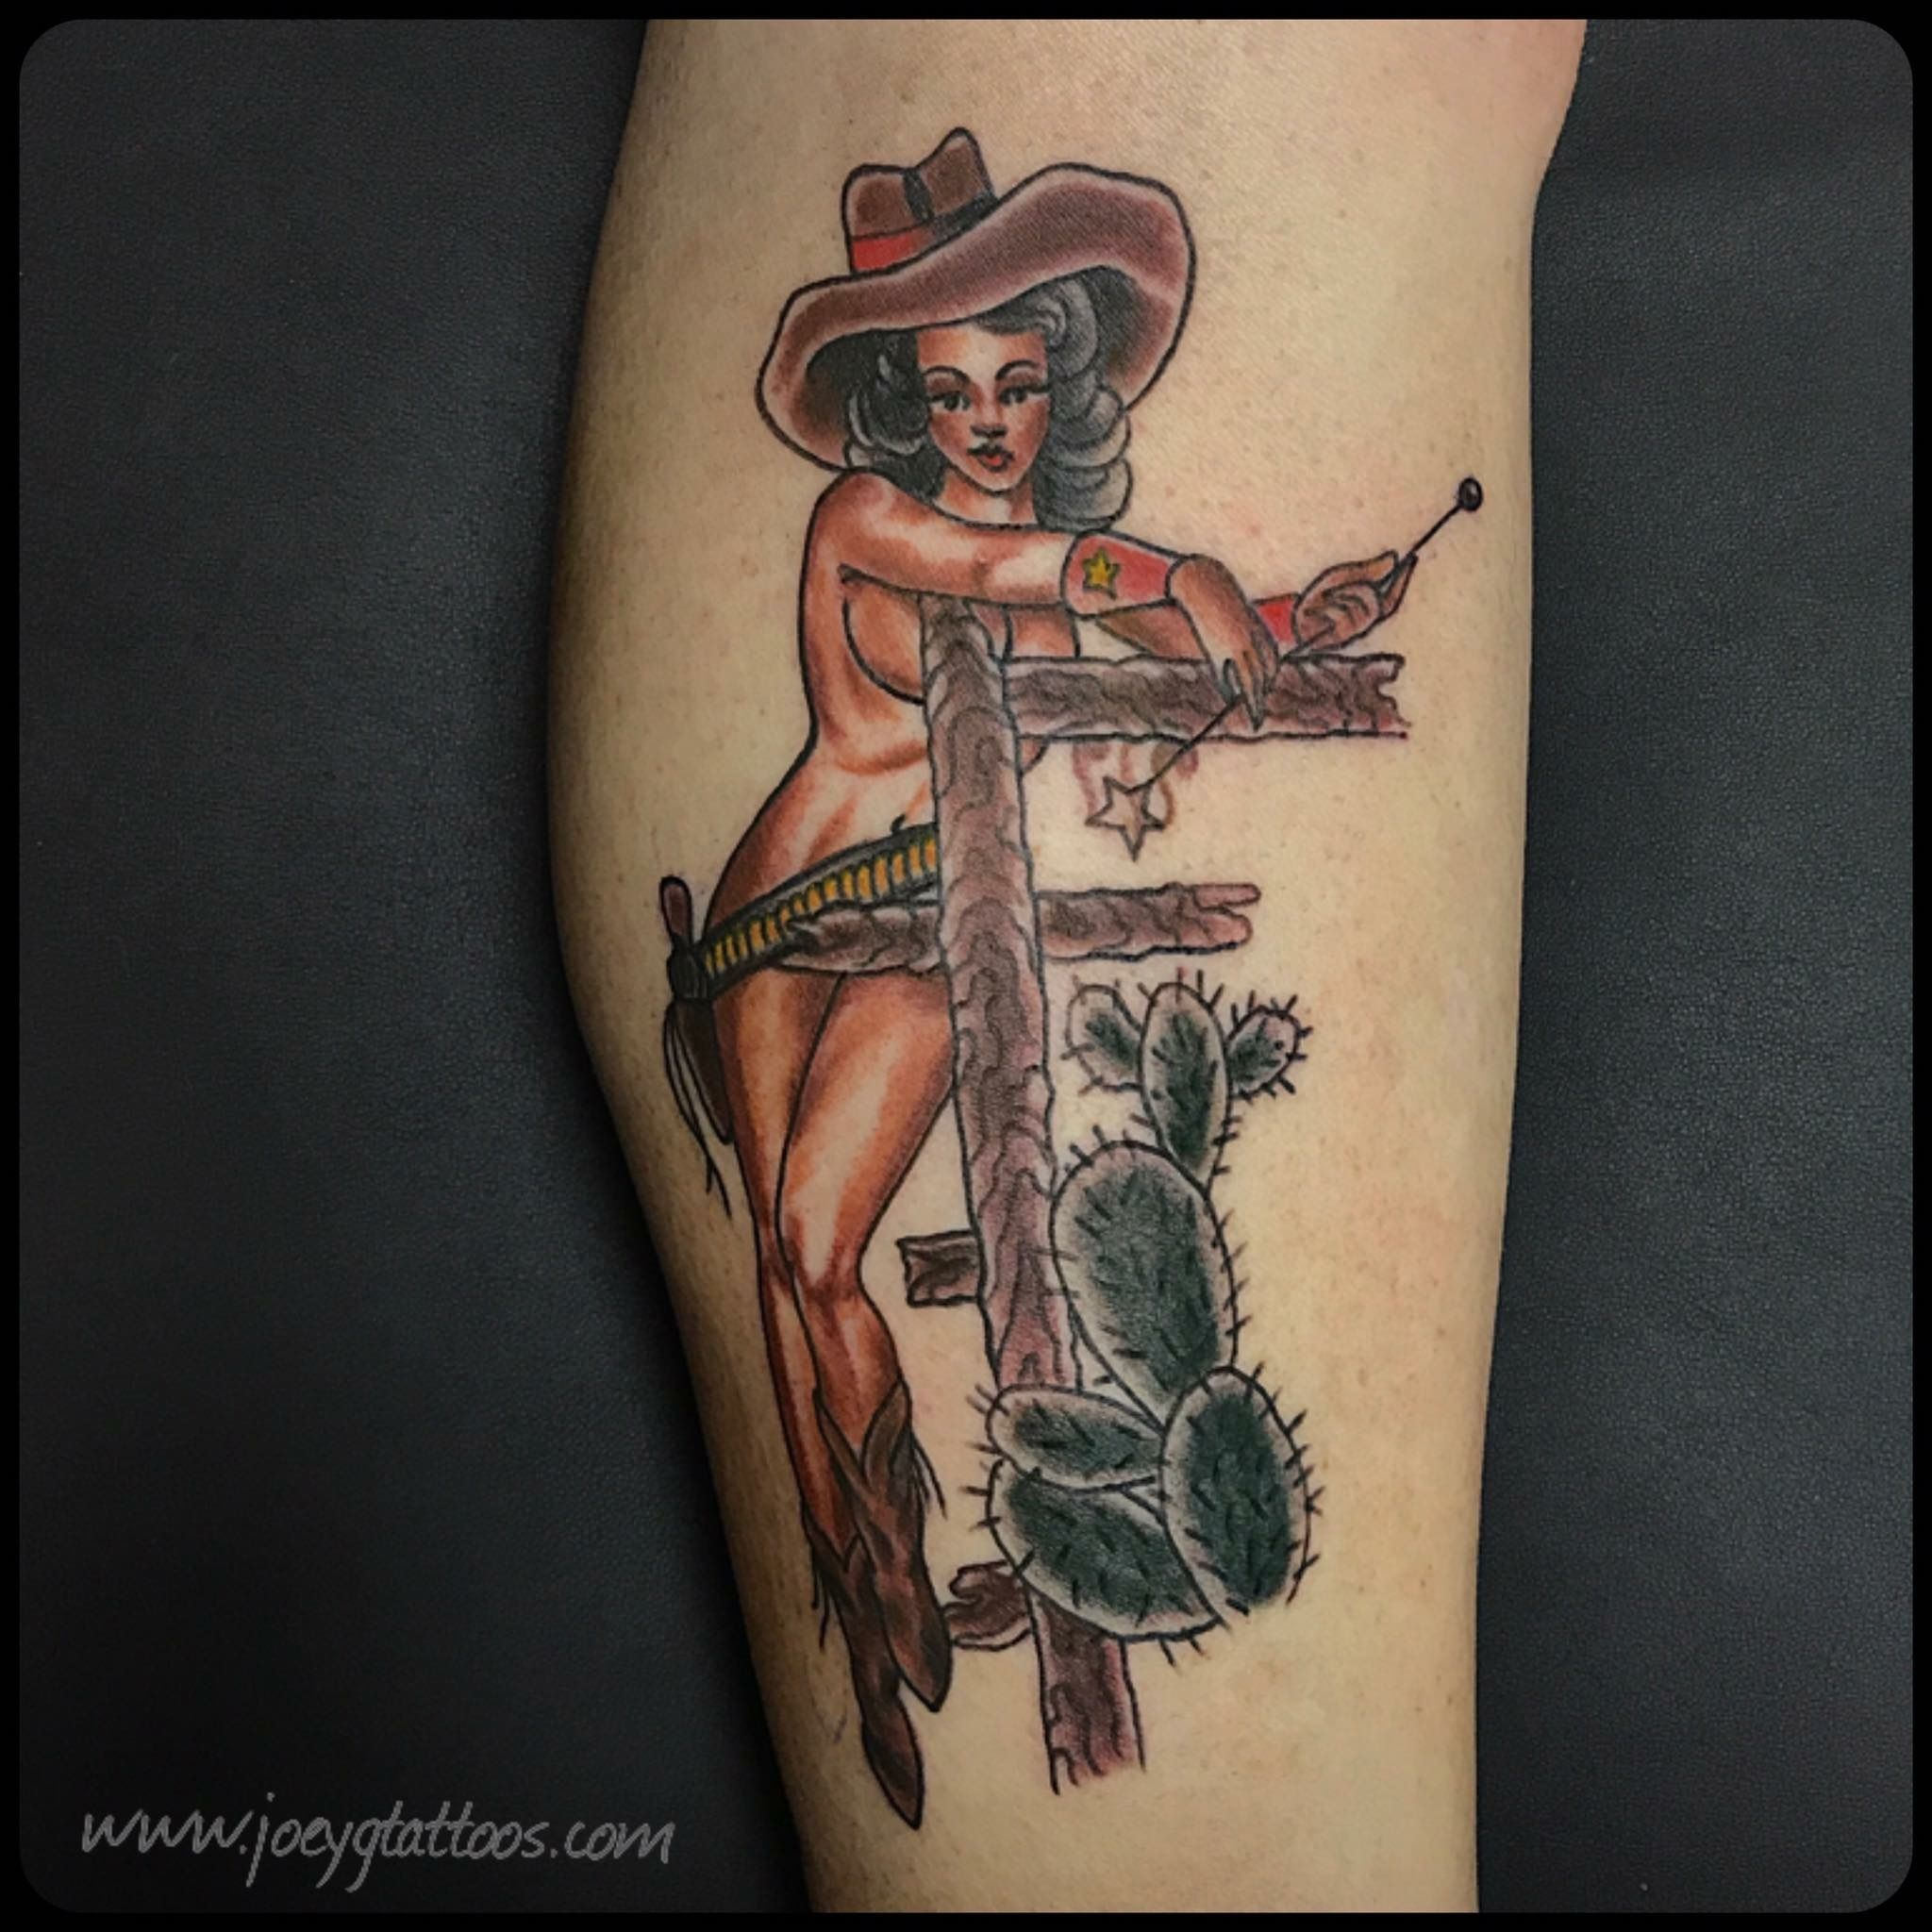 Traditional Cowgirl Tattoo Traditional Pinup Tattoo Cowgirl Tattoos Tattoos Tattoo Images